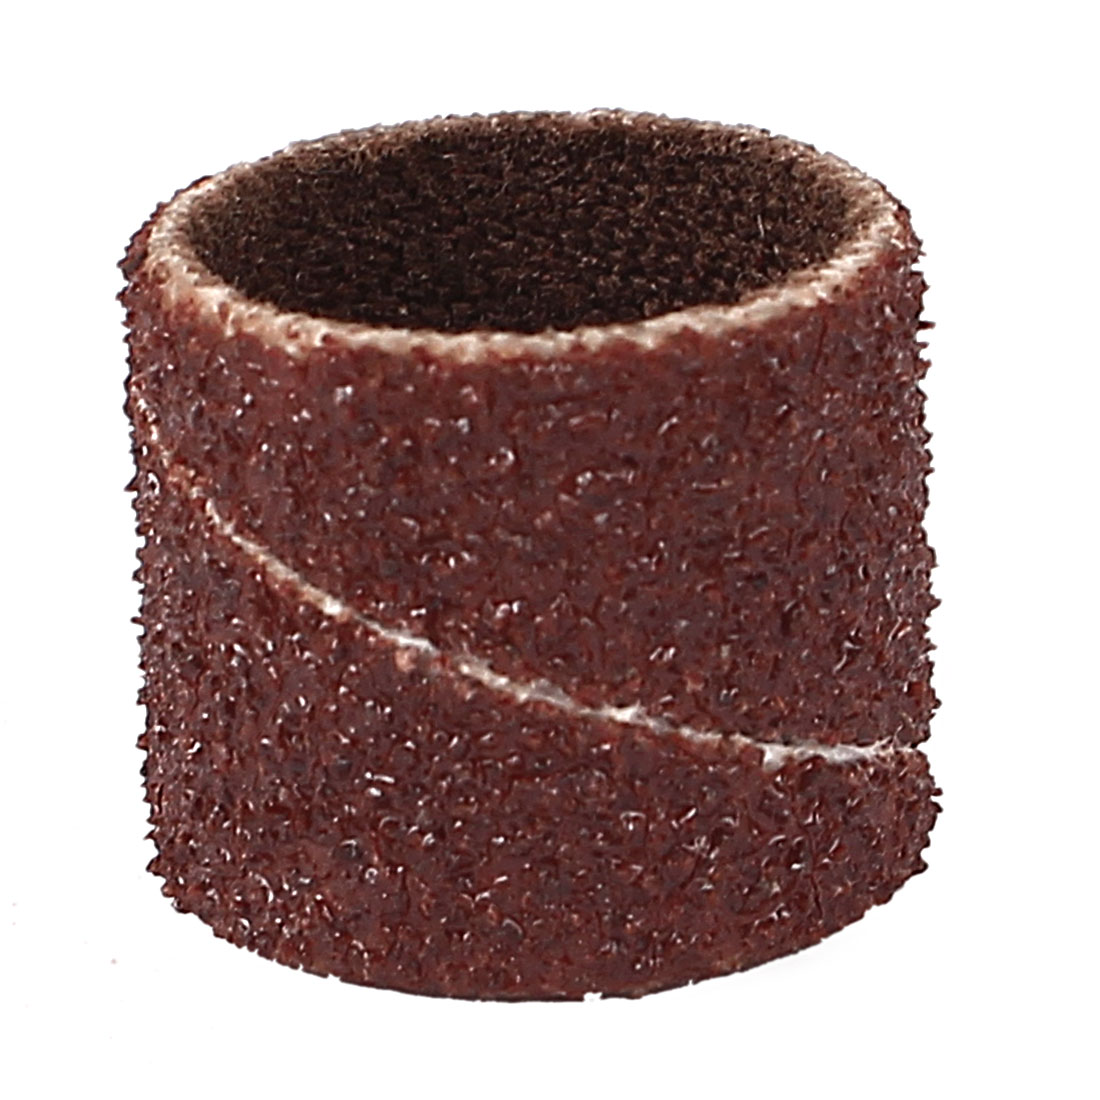 12mm Diameter 80 Grit Sanding Drums Abrasive Spiral Band Sleeves Rolls